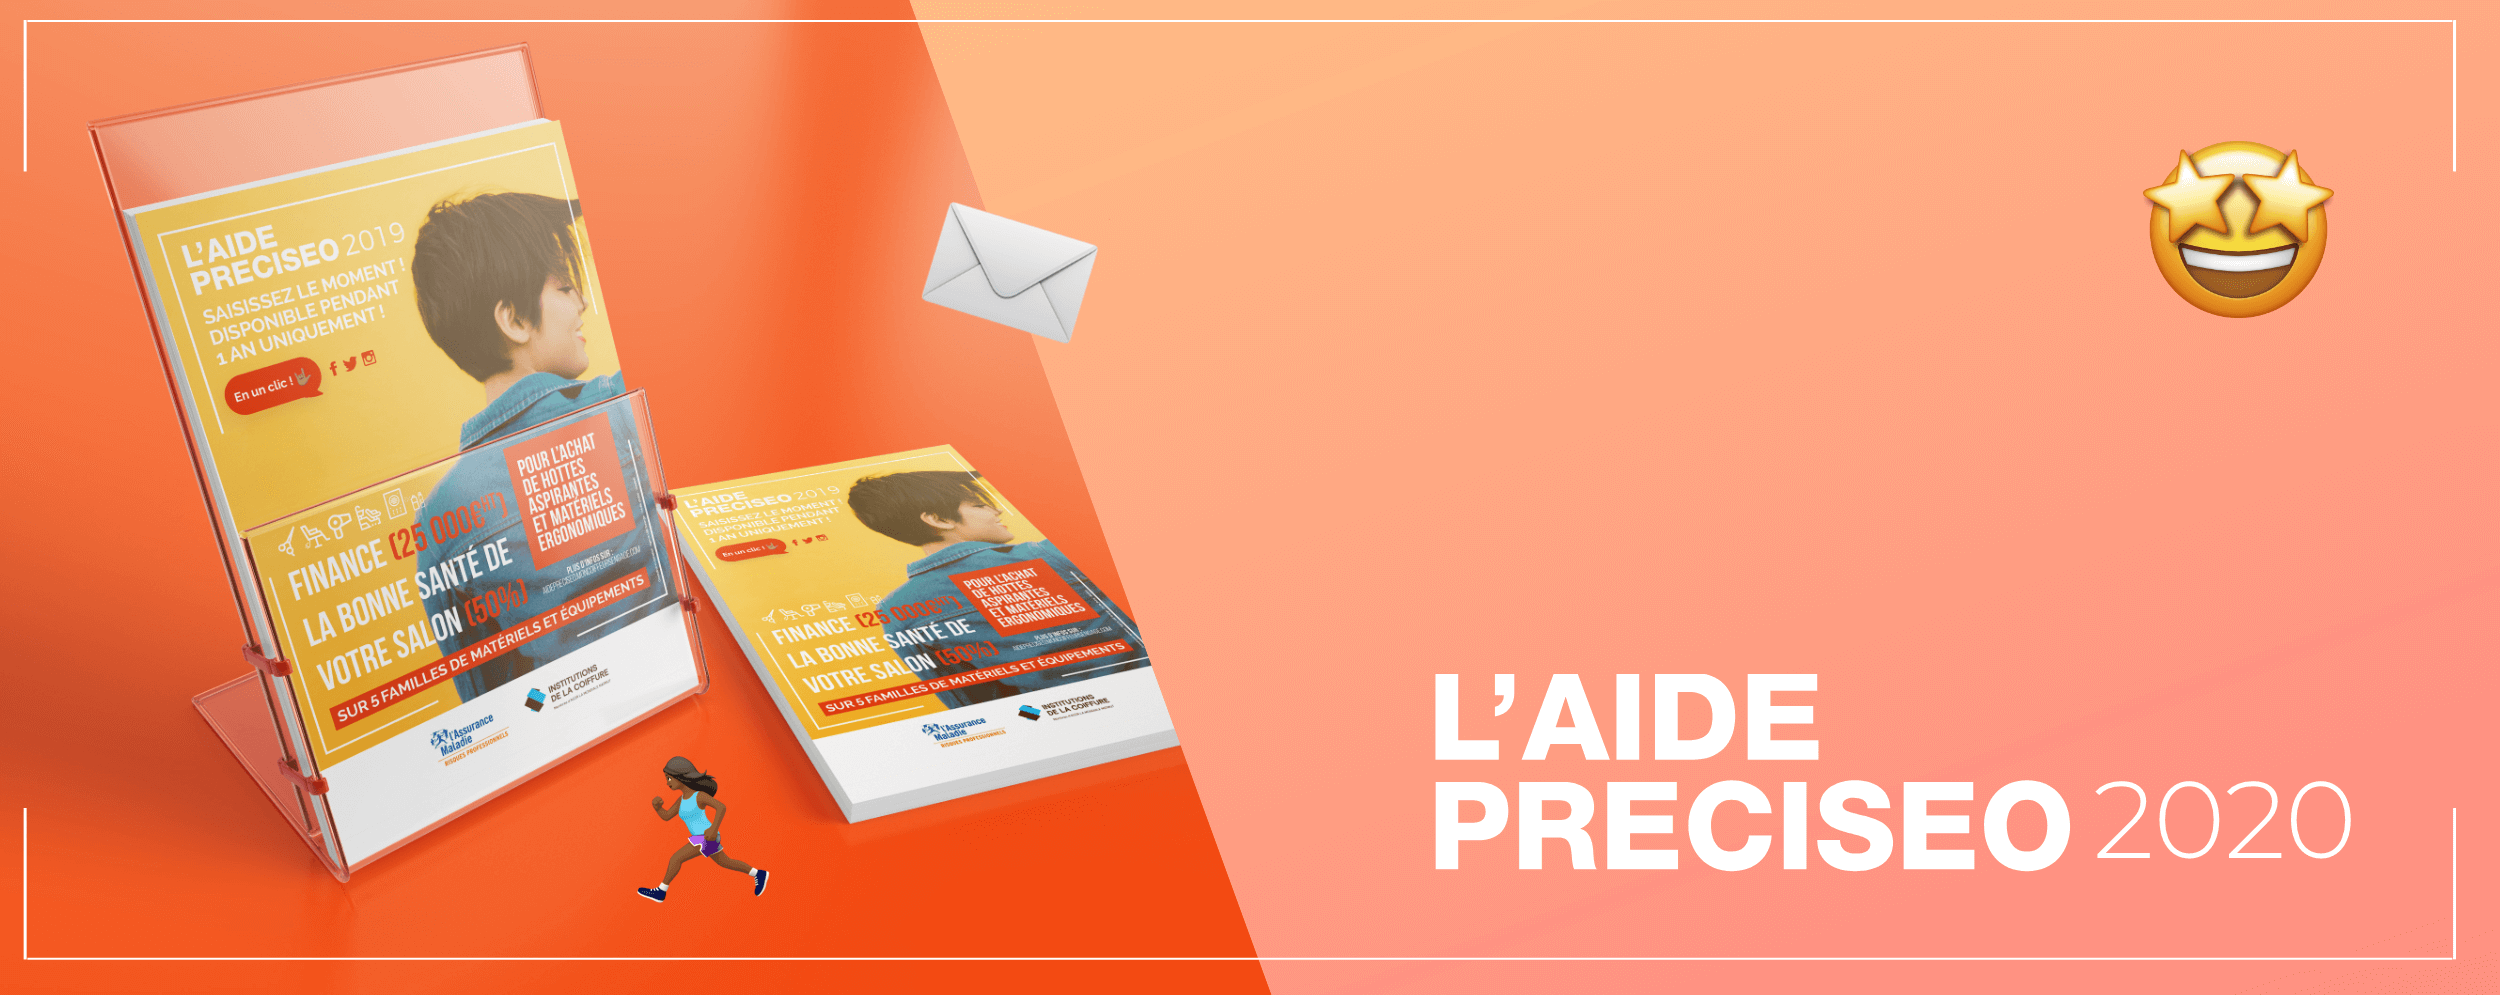 mock-up2-aide-preciseo-agence-conseil-en-communication-Letb-synergie